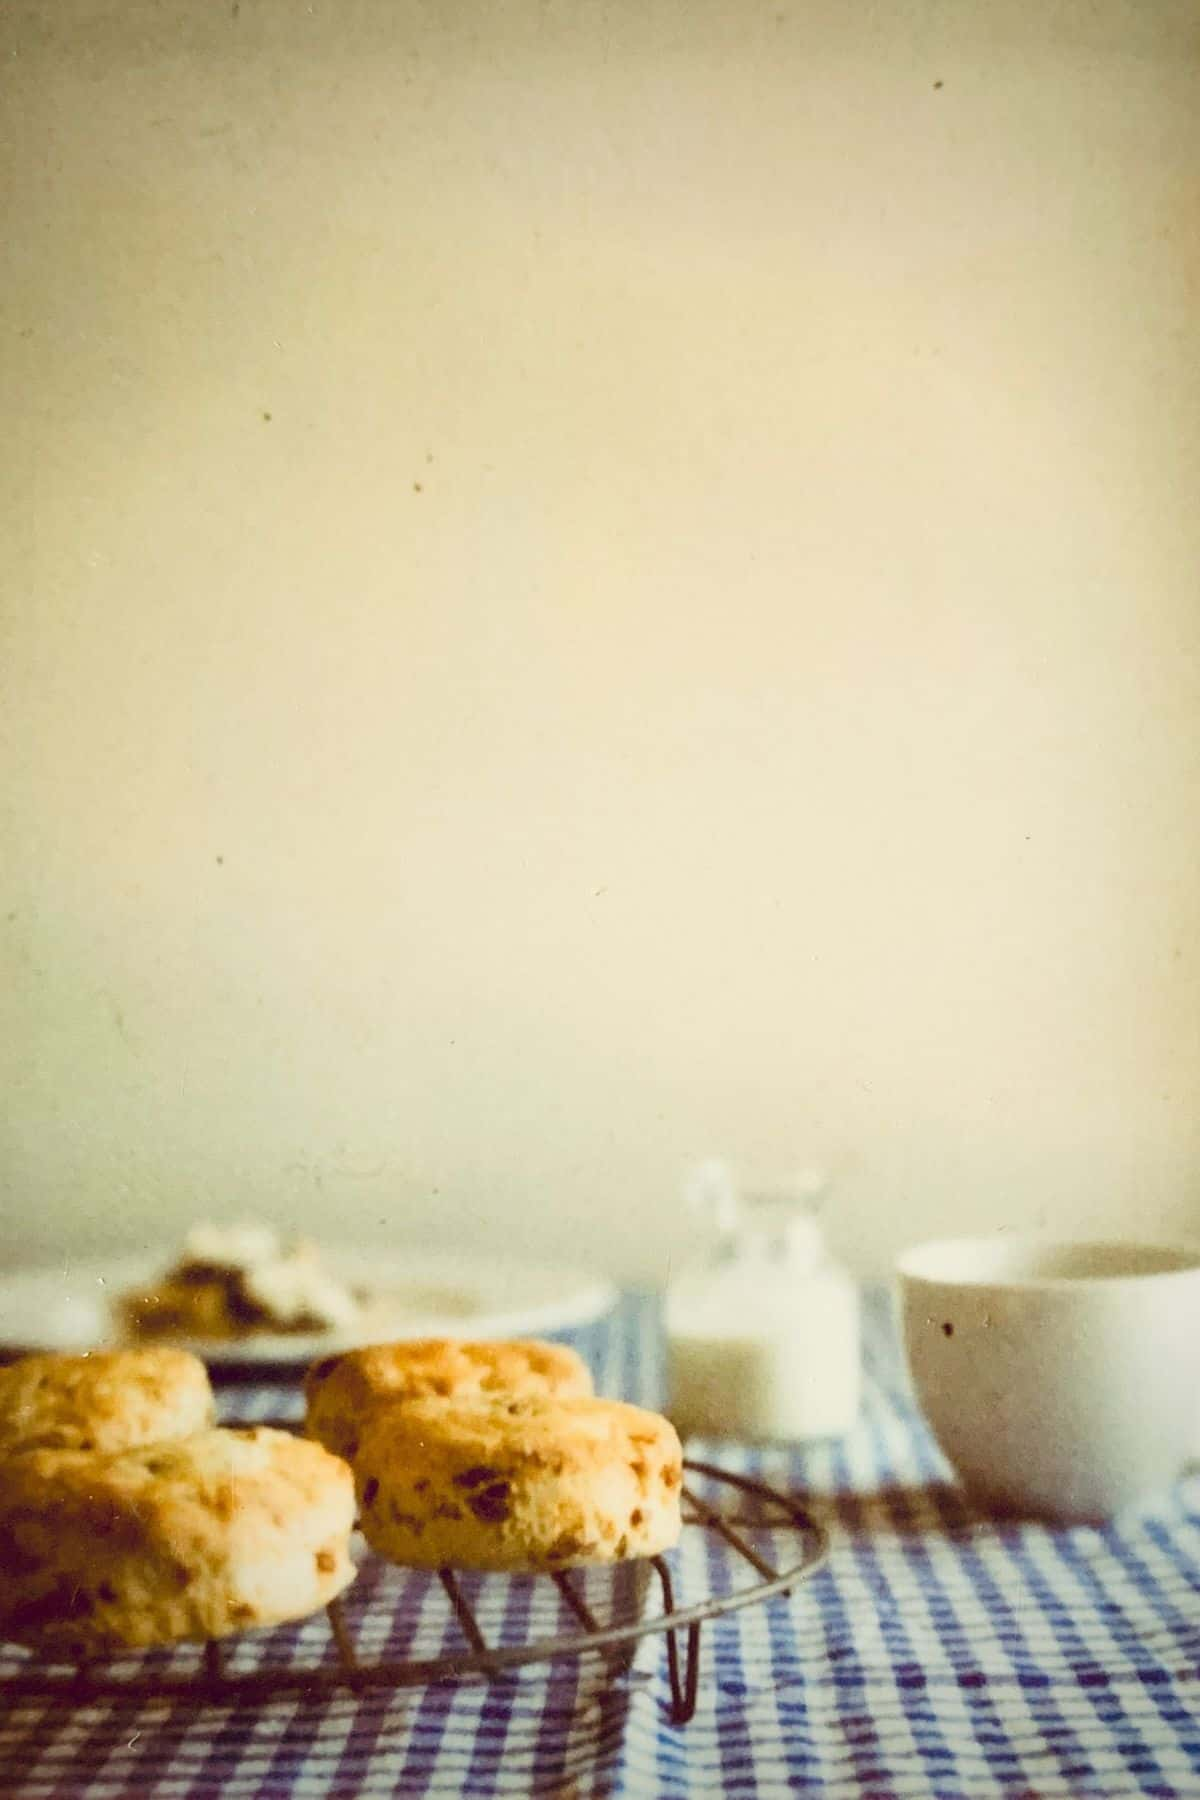 lemon and date scones on a table with a blue and white checkered tablecloth accompanied by jam, cream and hot tea